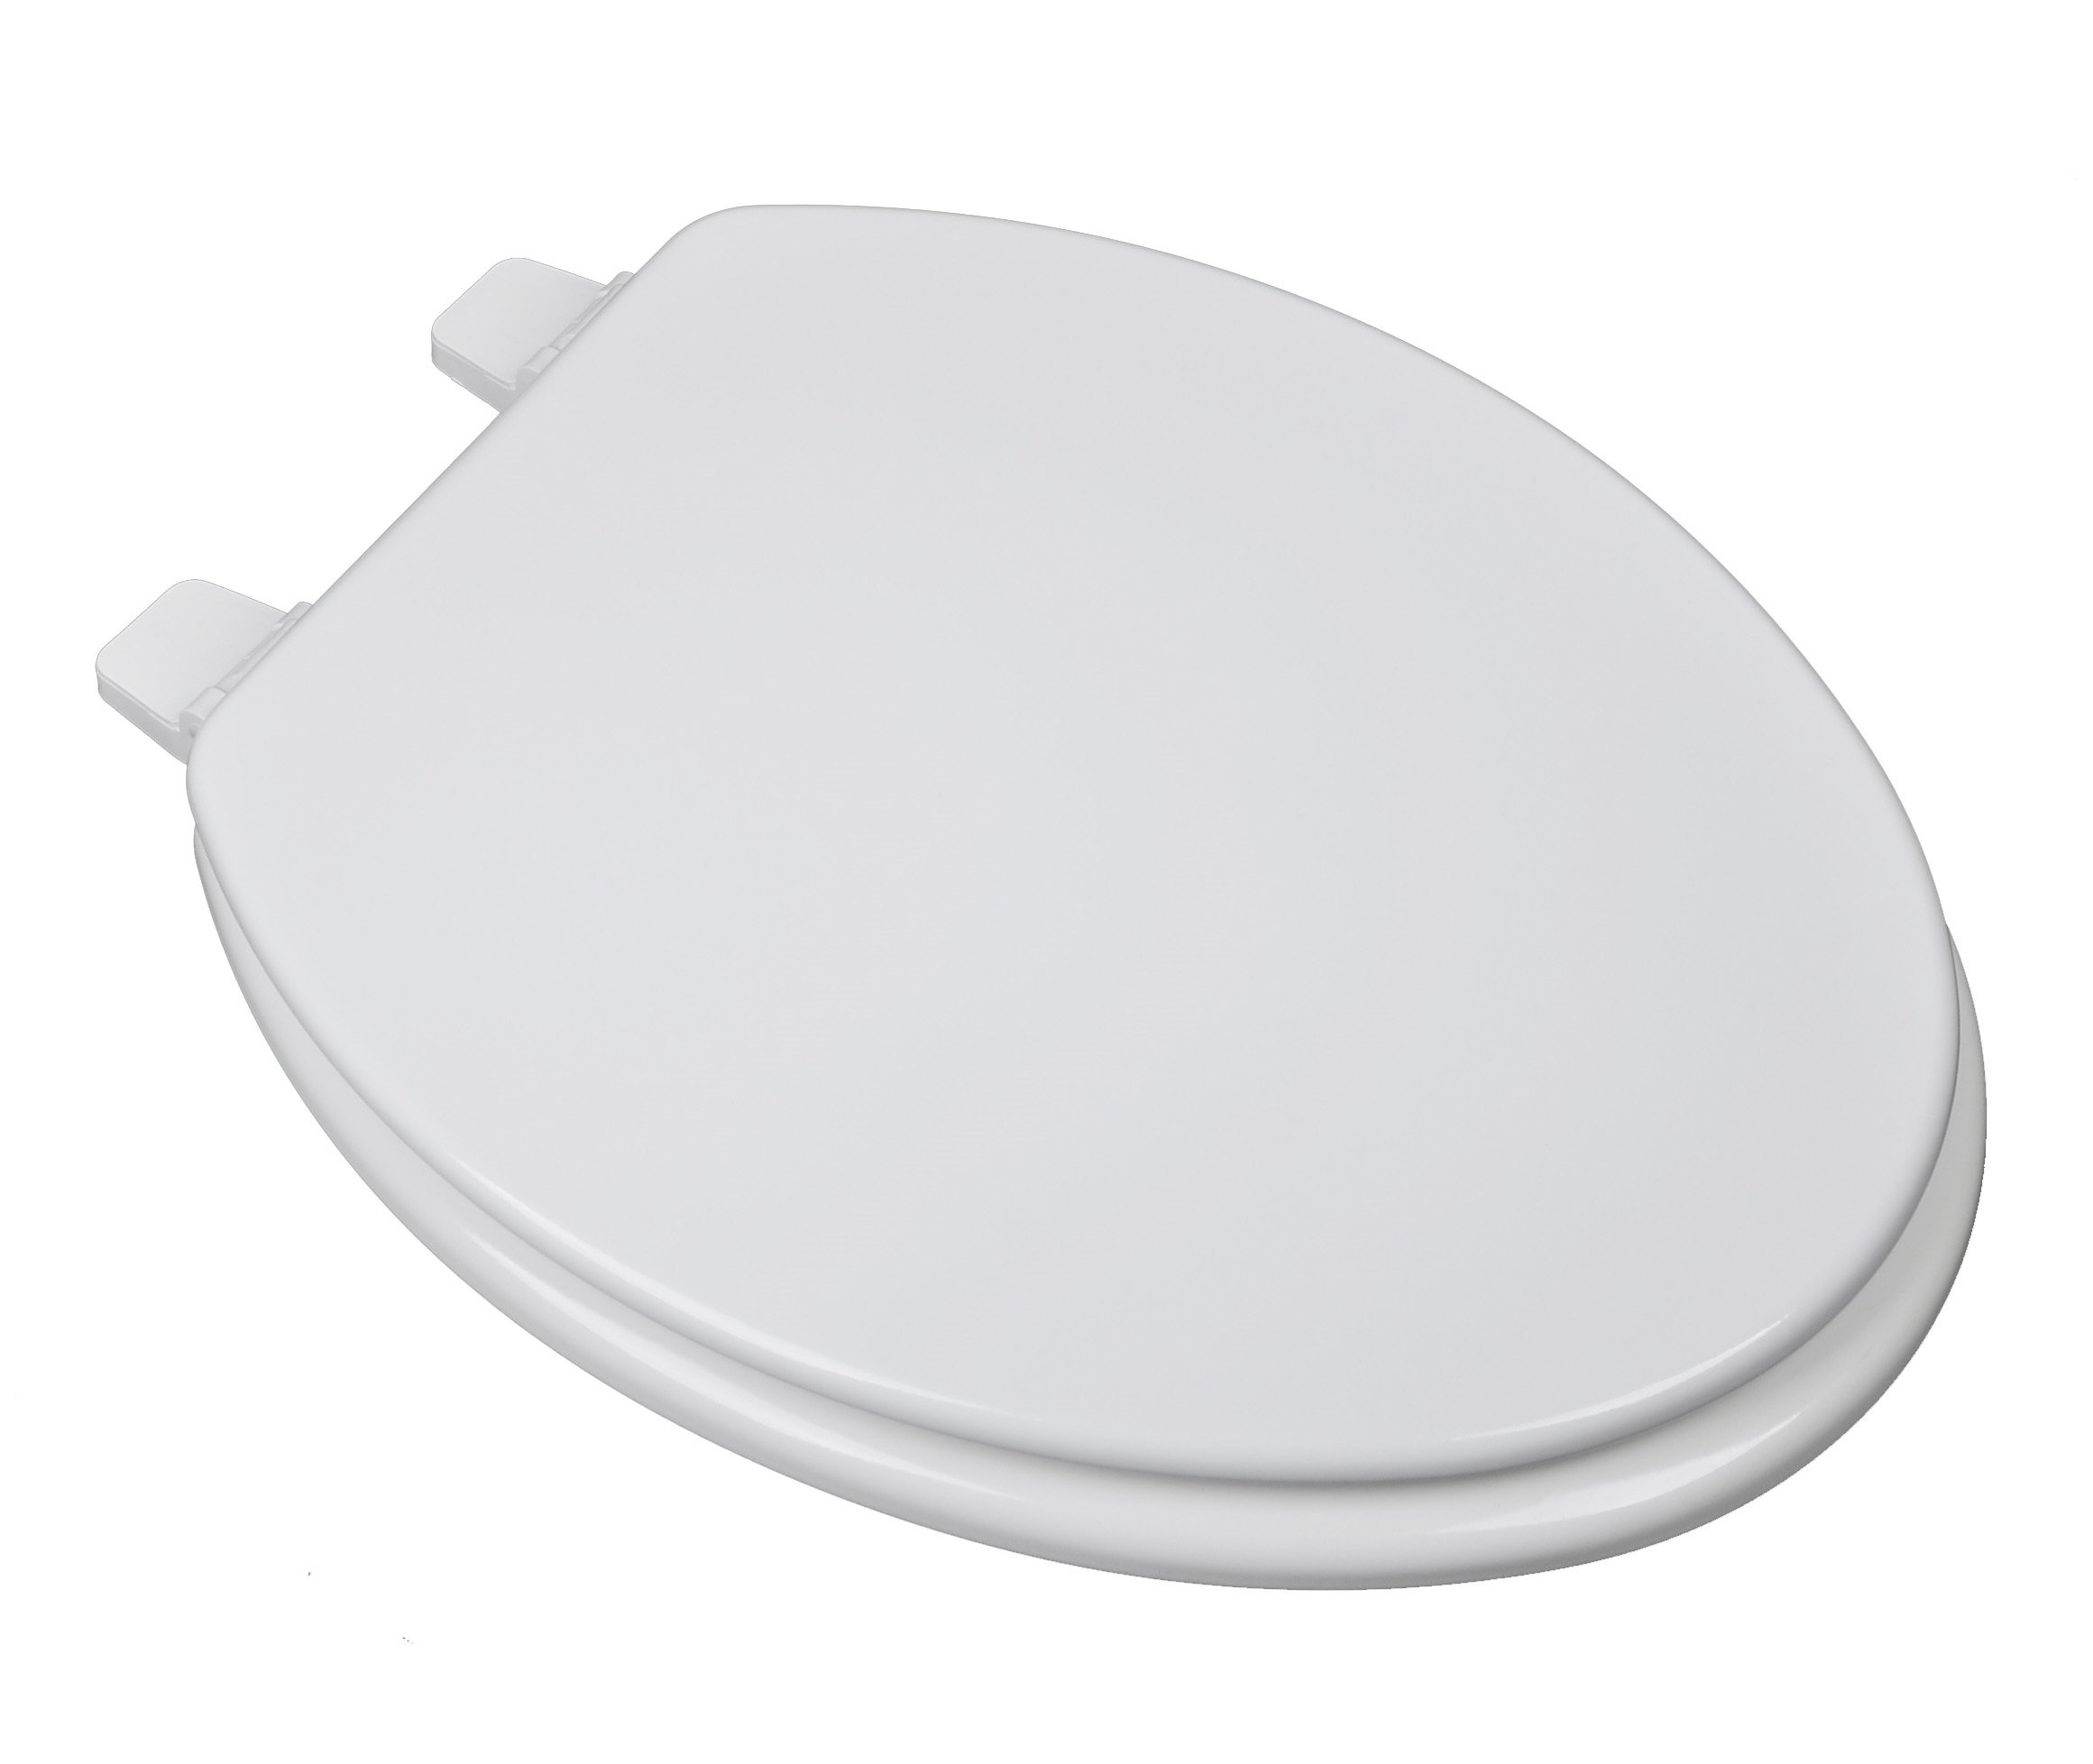 Bath Décor 1F1E2-00 Builder Grade Molded Wood Elongated Toilet Seat with Adjustable Hinge, White